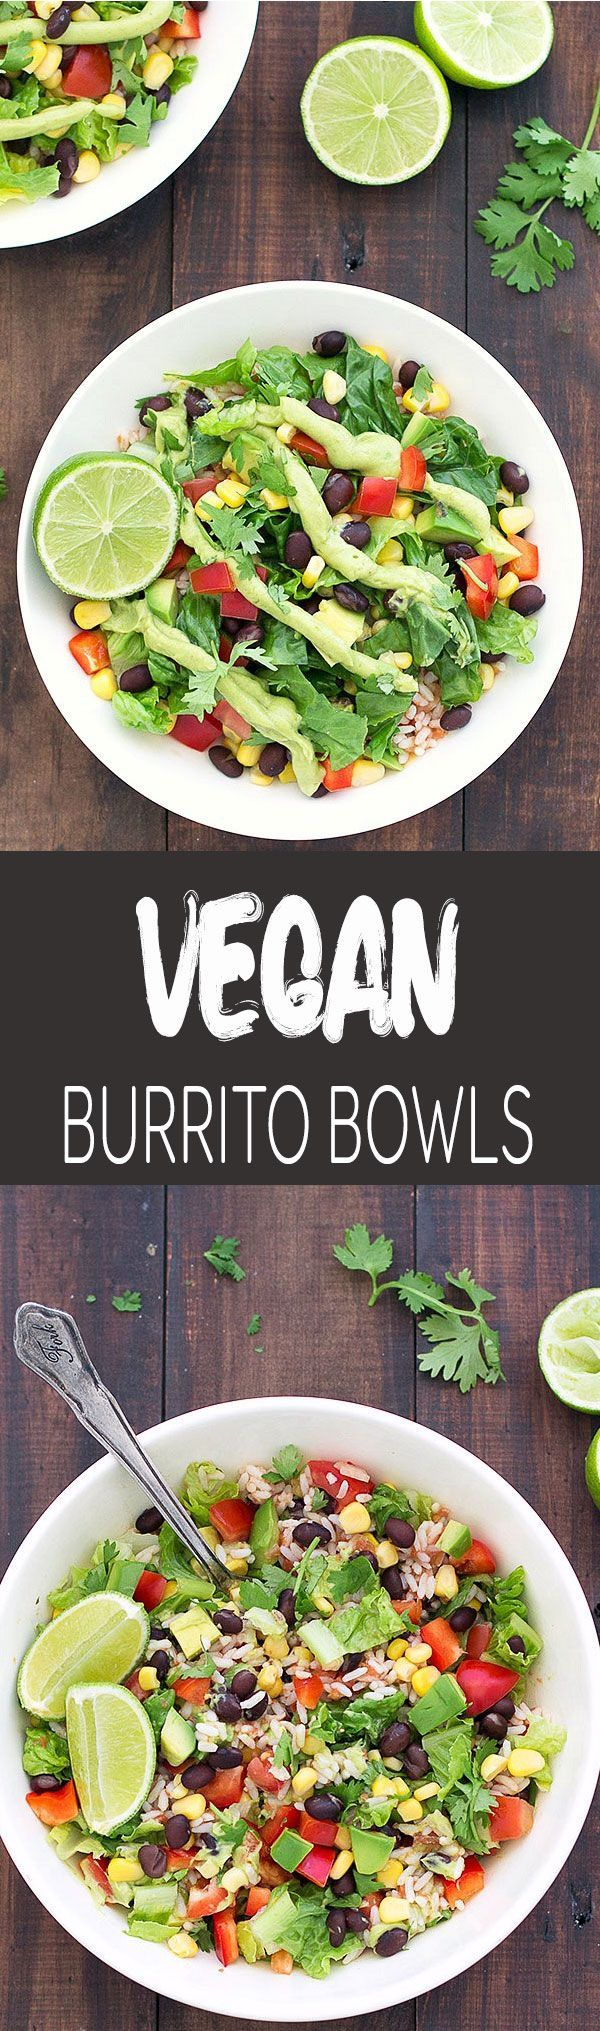 These vegan burrito salad bowls are super colorful, really easy to put together and packed with delicious Mexican flavor!